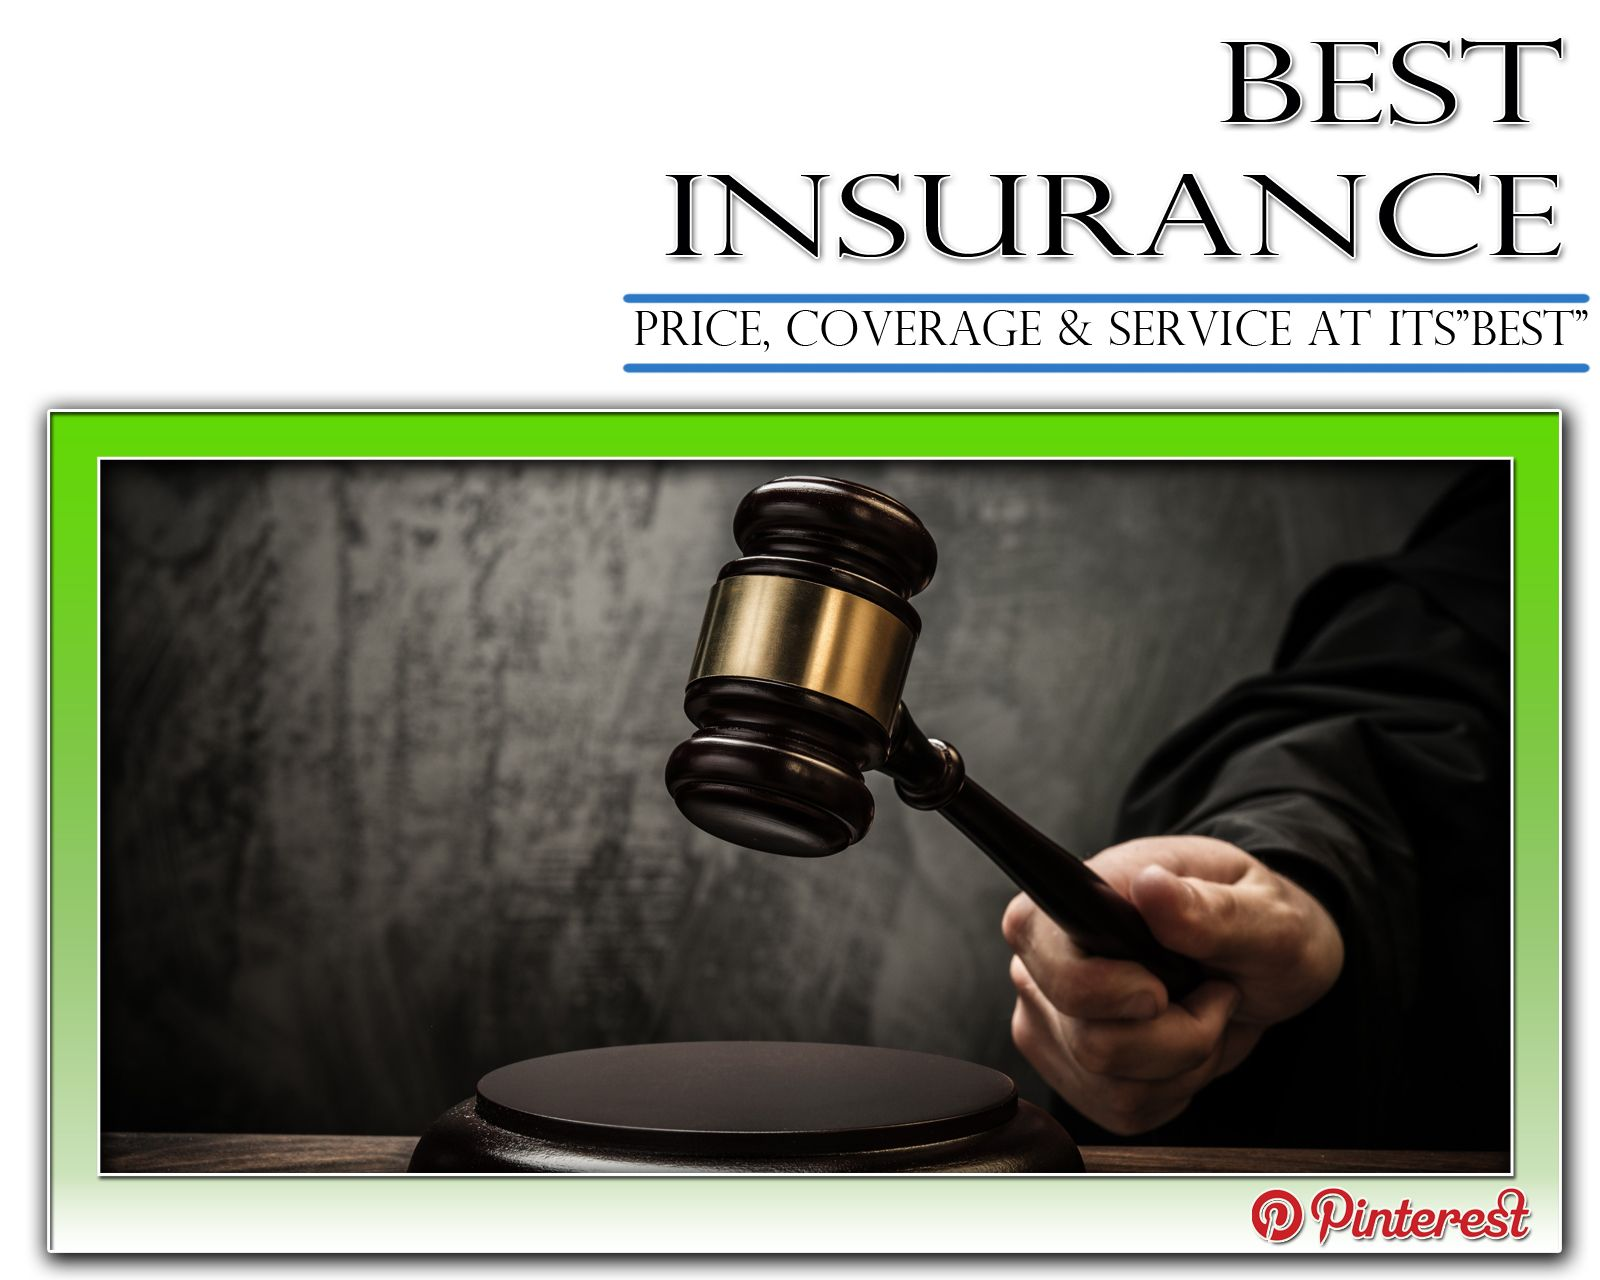 Carinsuranceftlauderdale insurance policy and law best